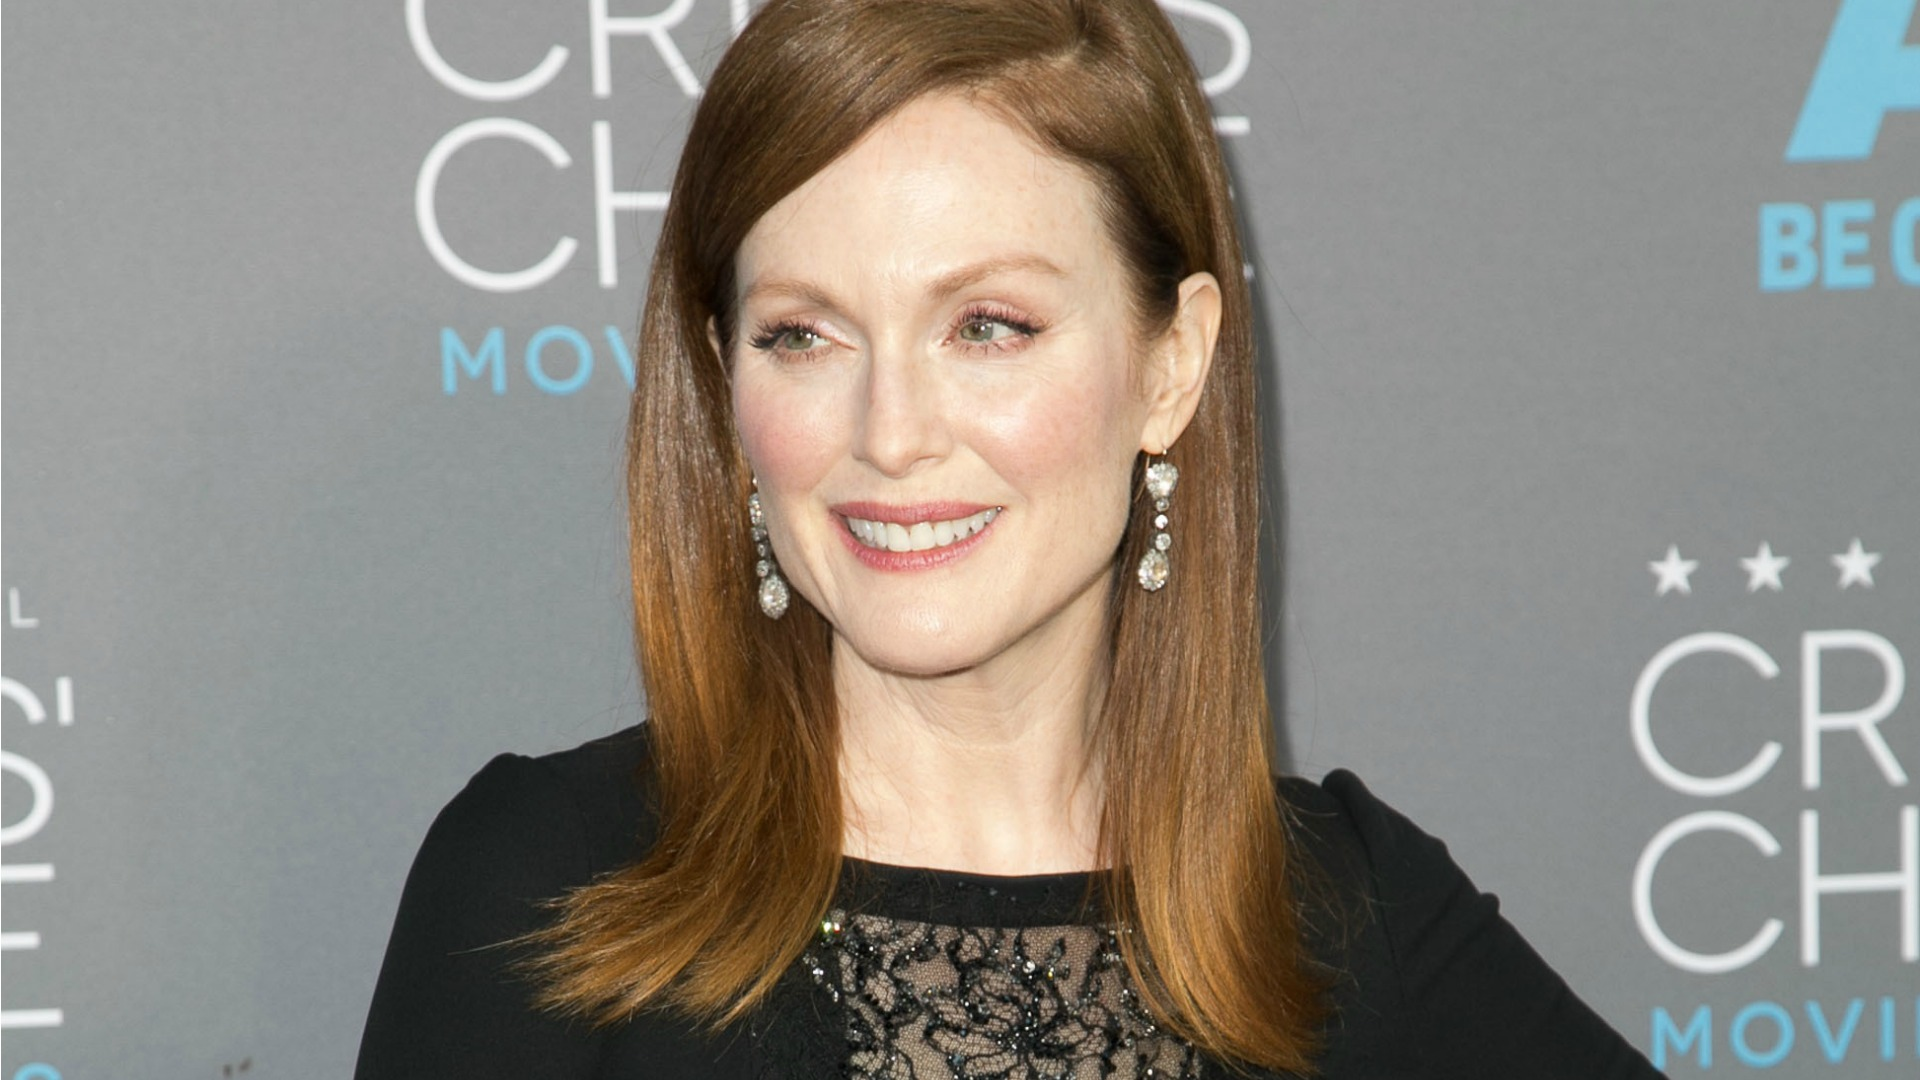 Julianne Moore at the Critics Choice Awards